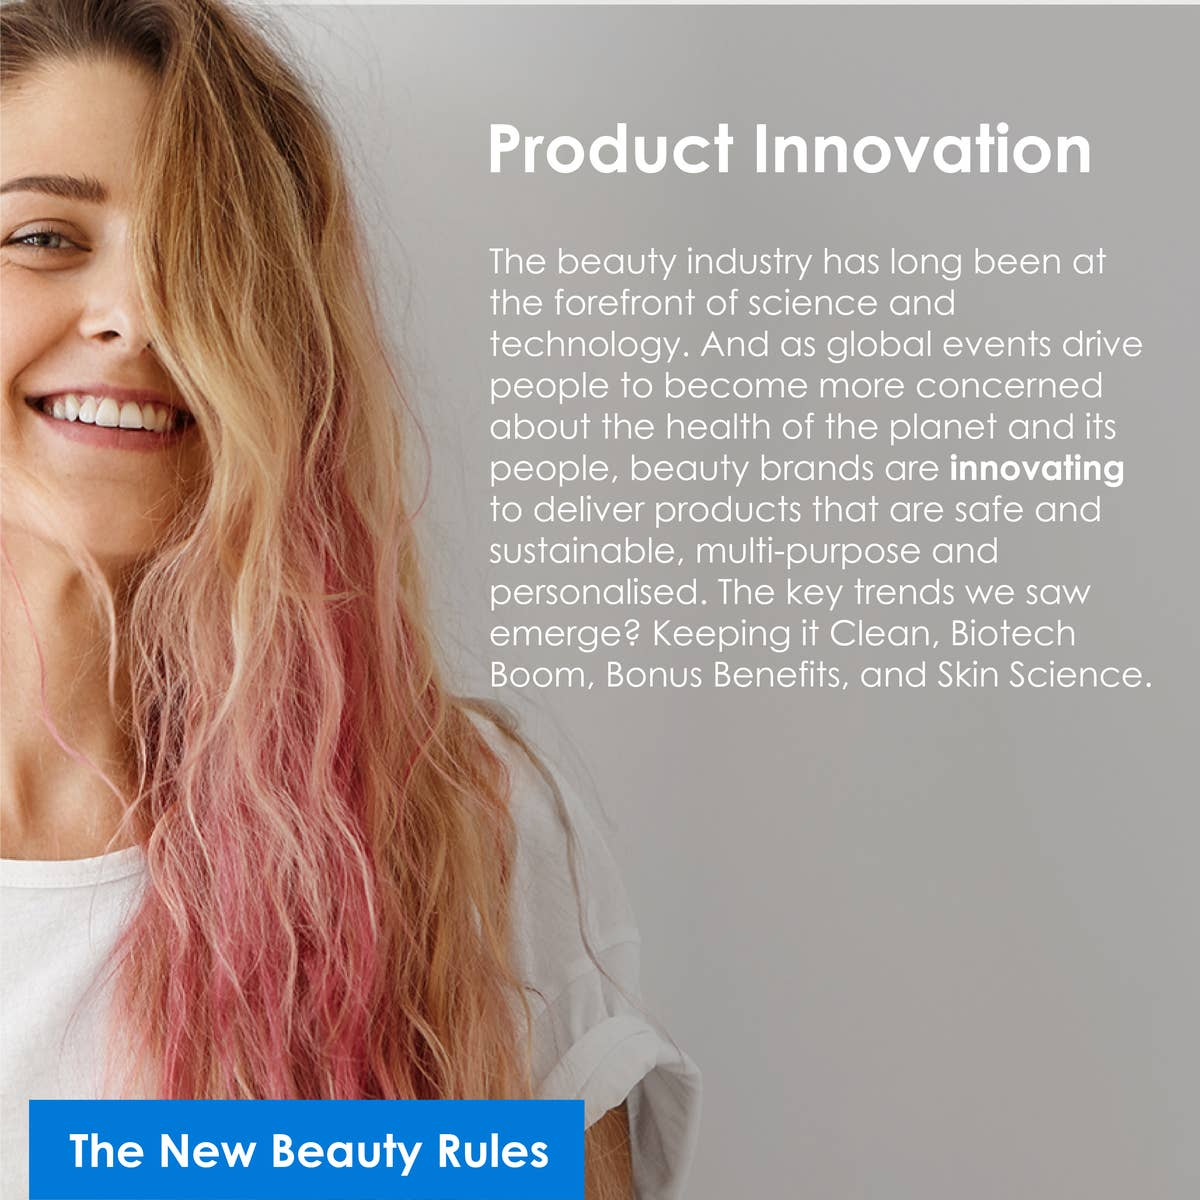 The new beauty rules: Groundbreaking product innovation